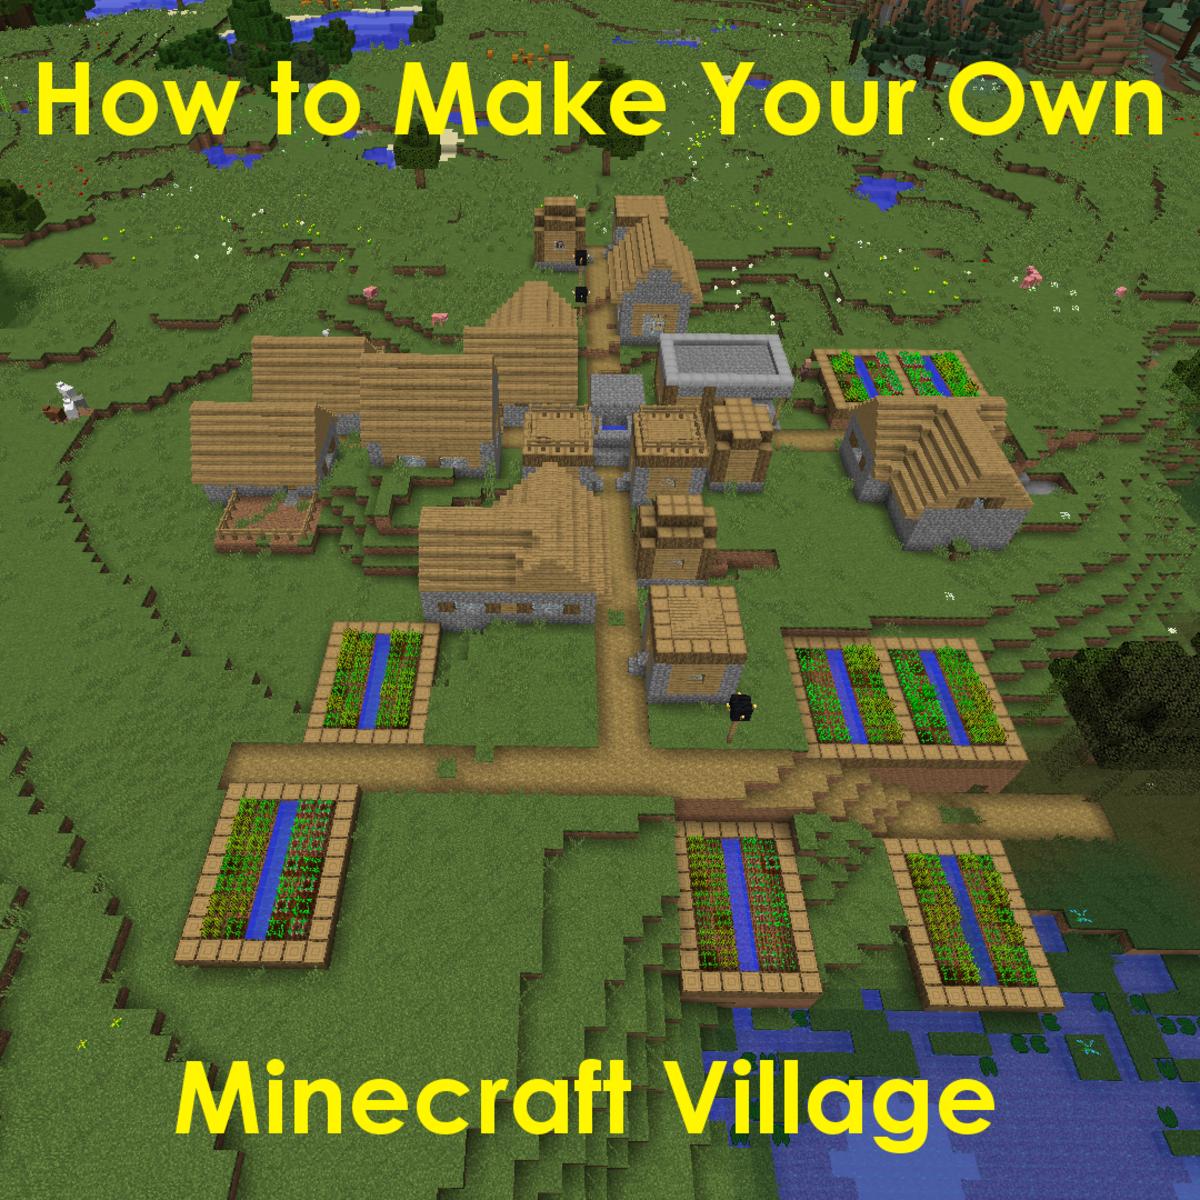 how to make your own village in minecraft | levelskip